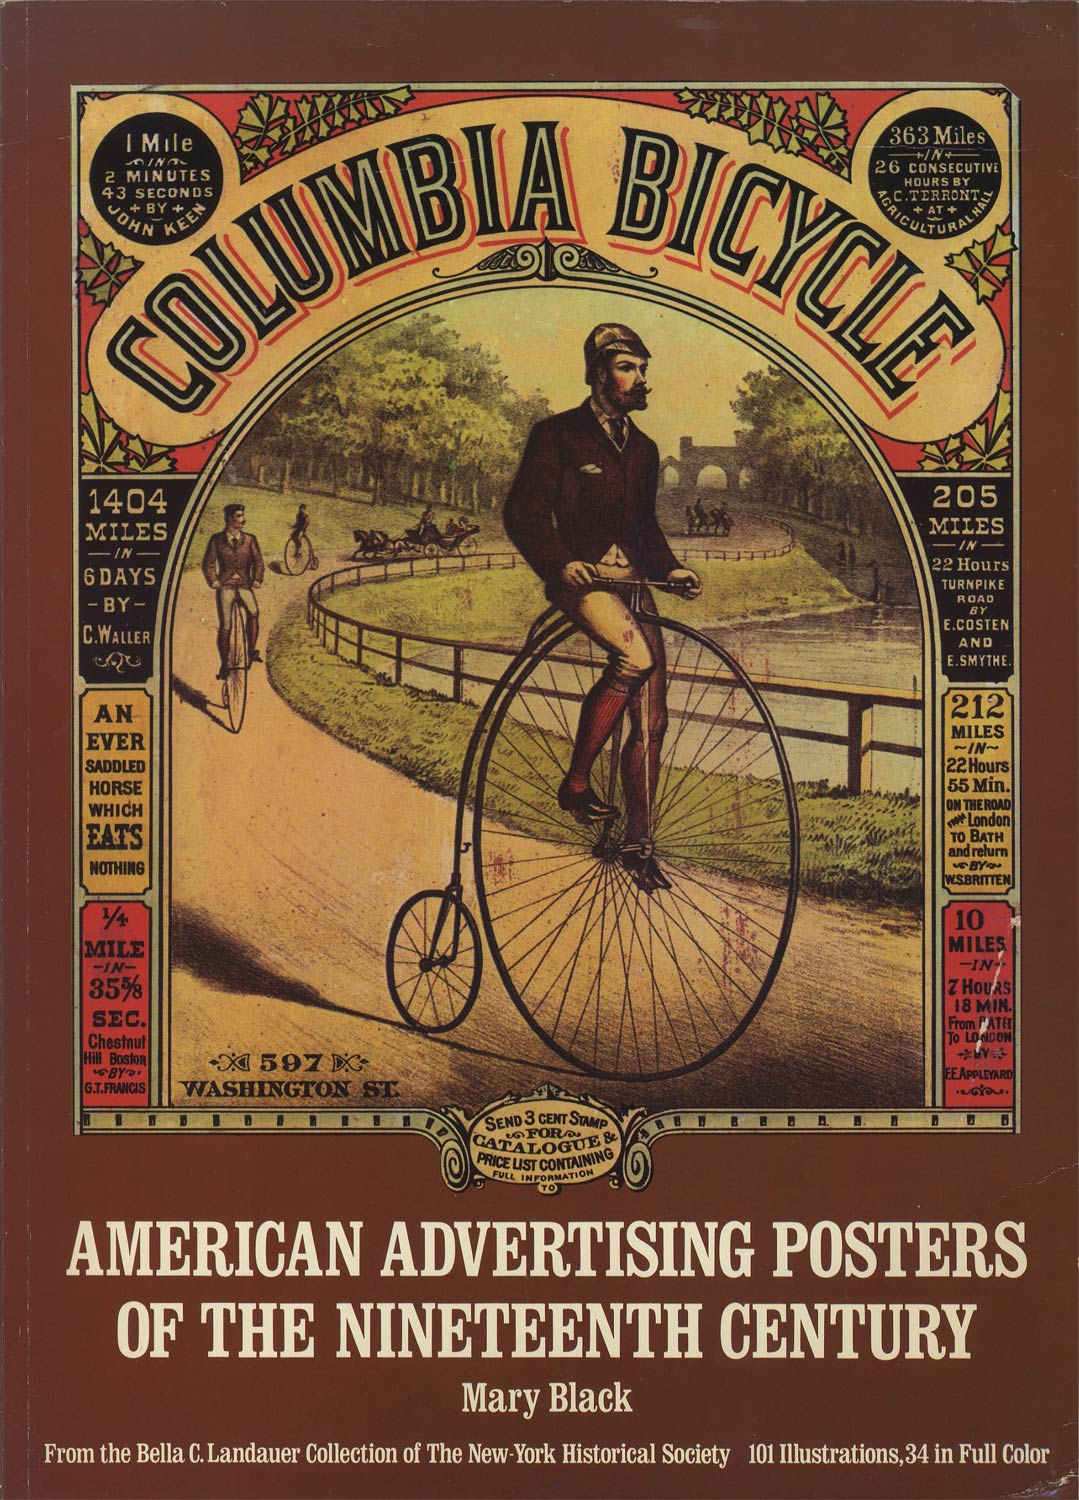 American Advertising Posters of the Nineteenth Century From the Bella C. Landauer Collection of the New-York Historical Society